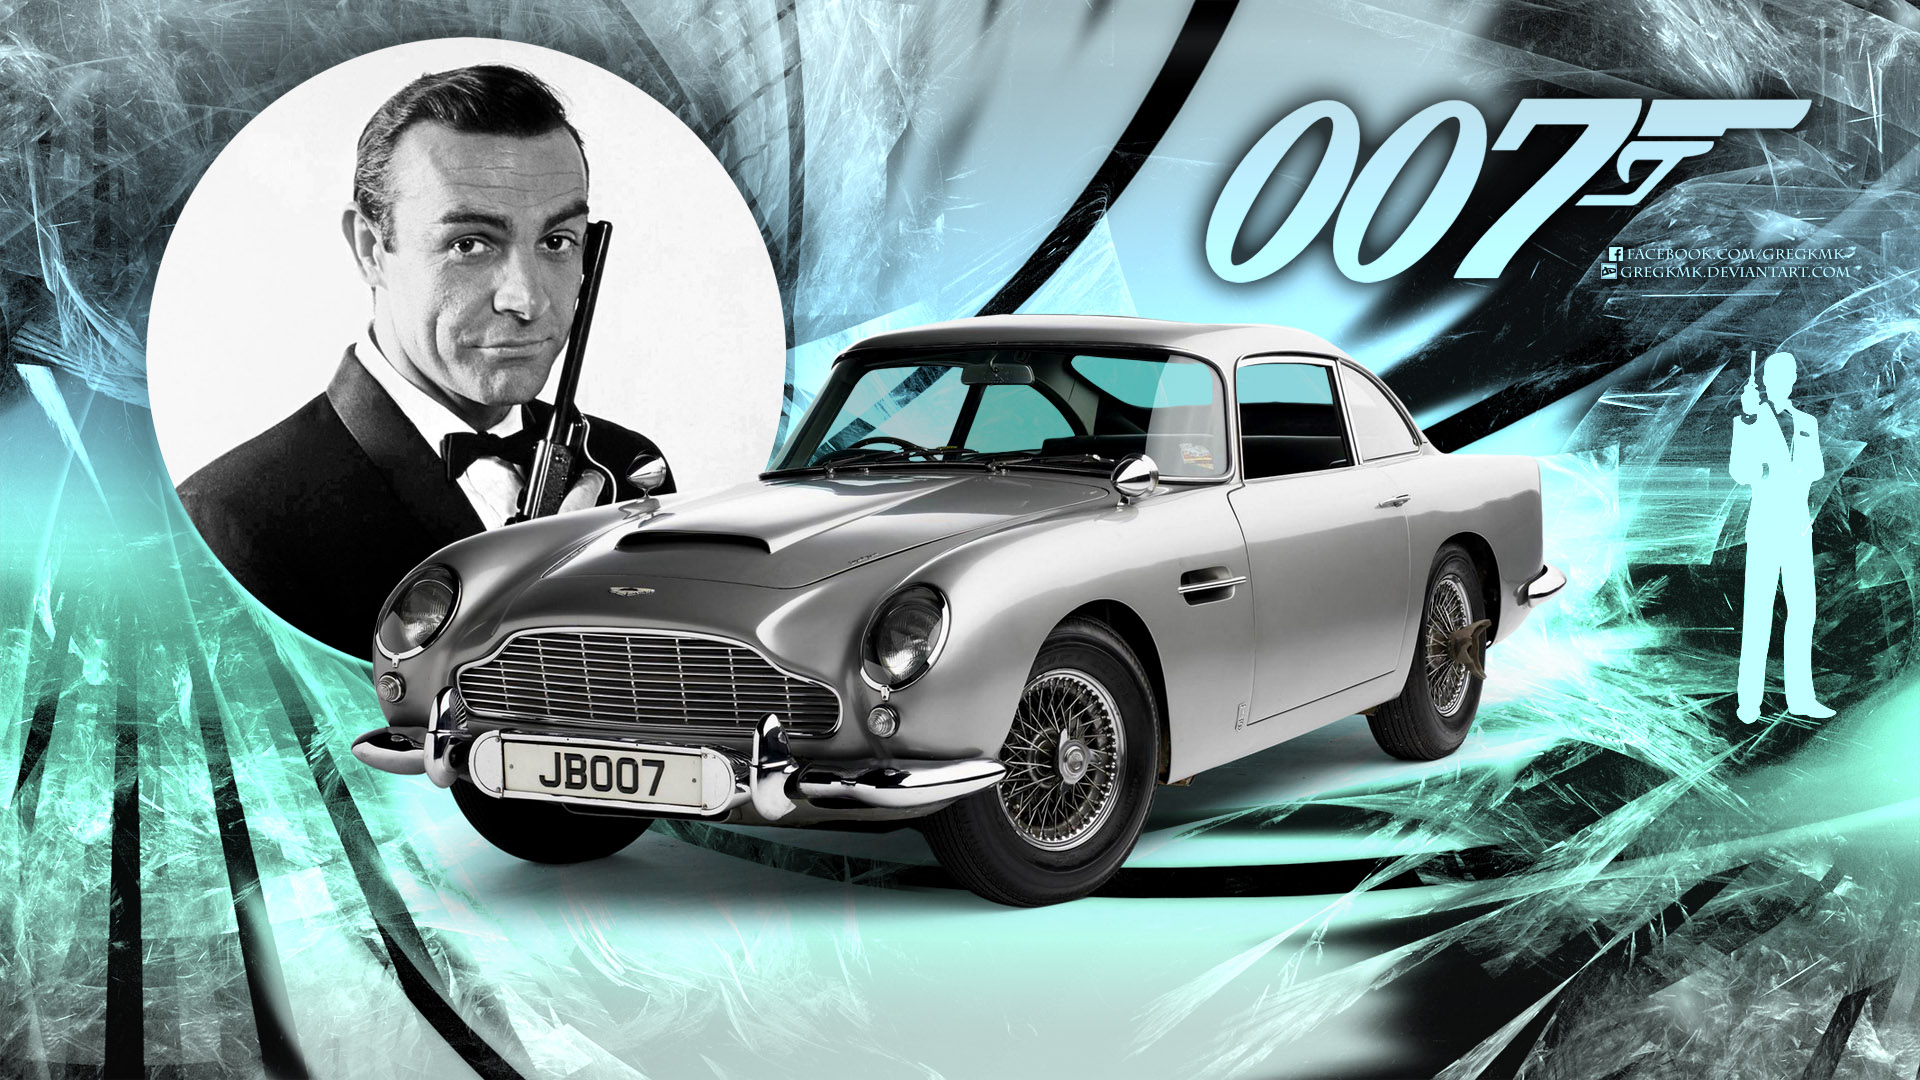 These 2006 aston martin dbs 007 casino royale wallpapers are free to download so go ahead. 496577 Title James Bond 007 Movie James Bond 007 Sean Connery James Bond Car 1920x1080 Download Hd Wallpaper Wallpapertip